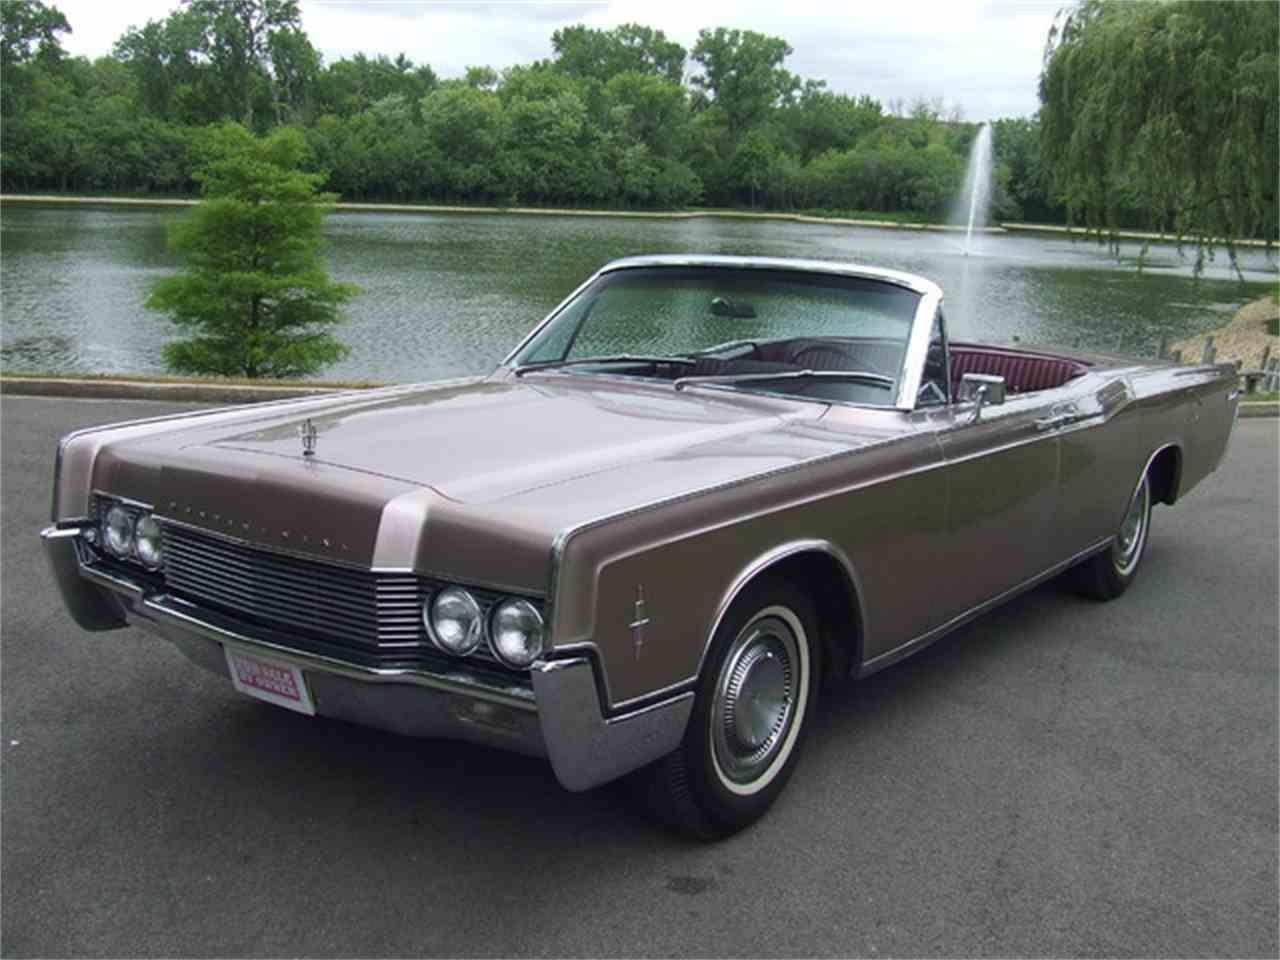 1966 Lincoln Continental convertible | Lincoln 1961-69 | Pinterest ...